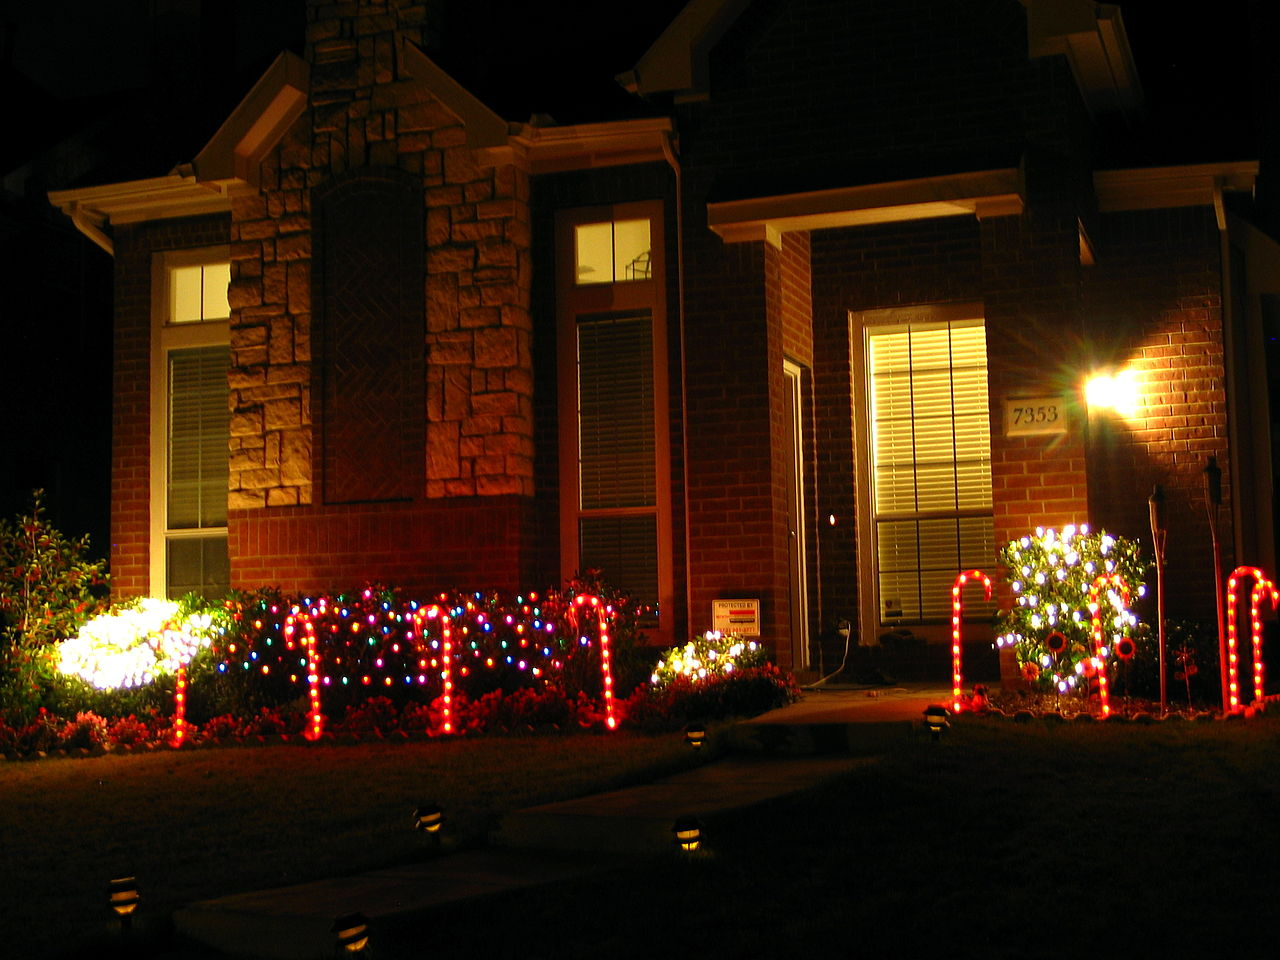 Outdoor decorating for christmas - File Christmas Decoration Outdoors Jpg